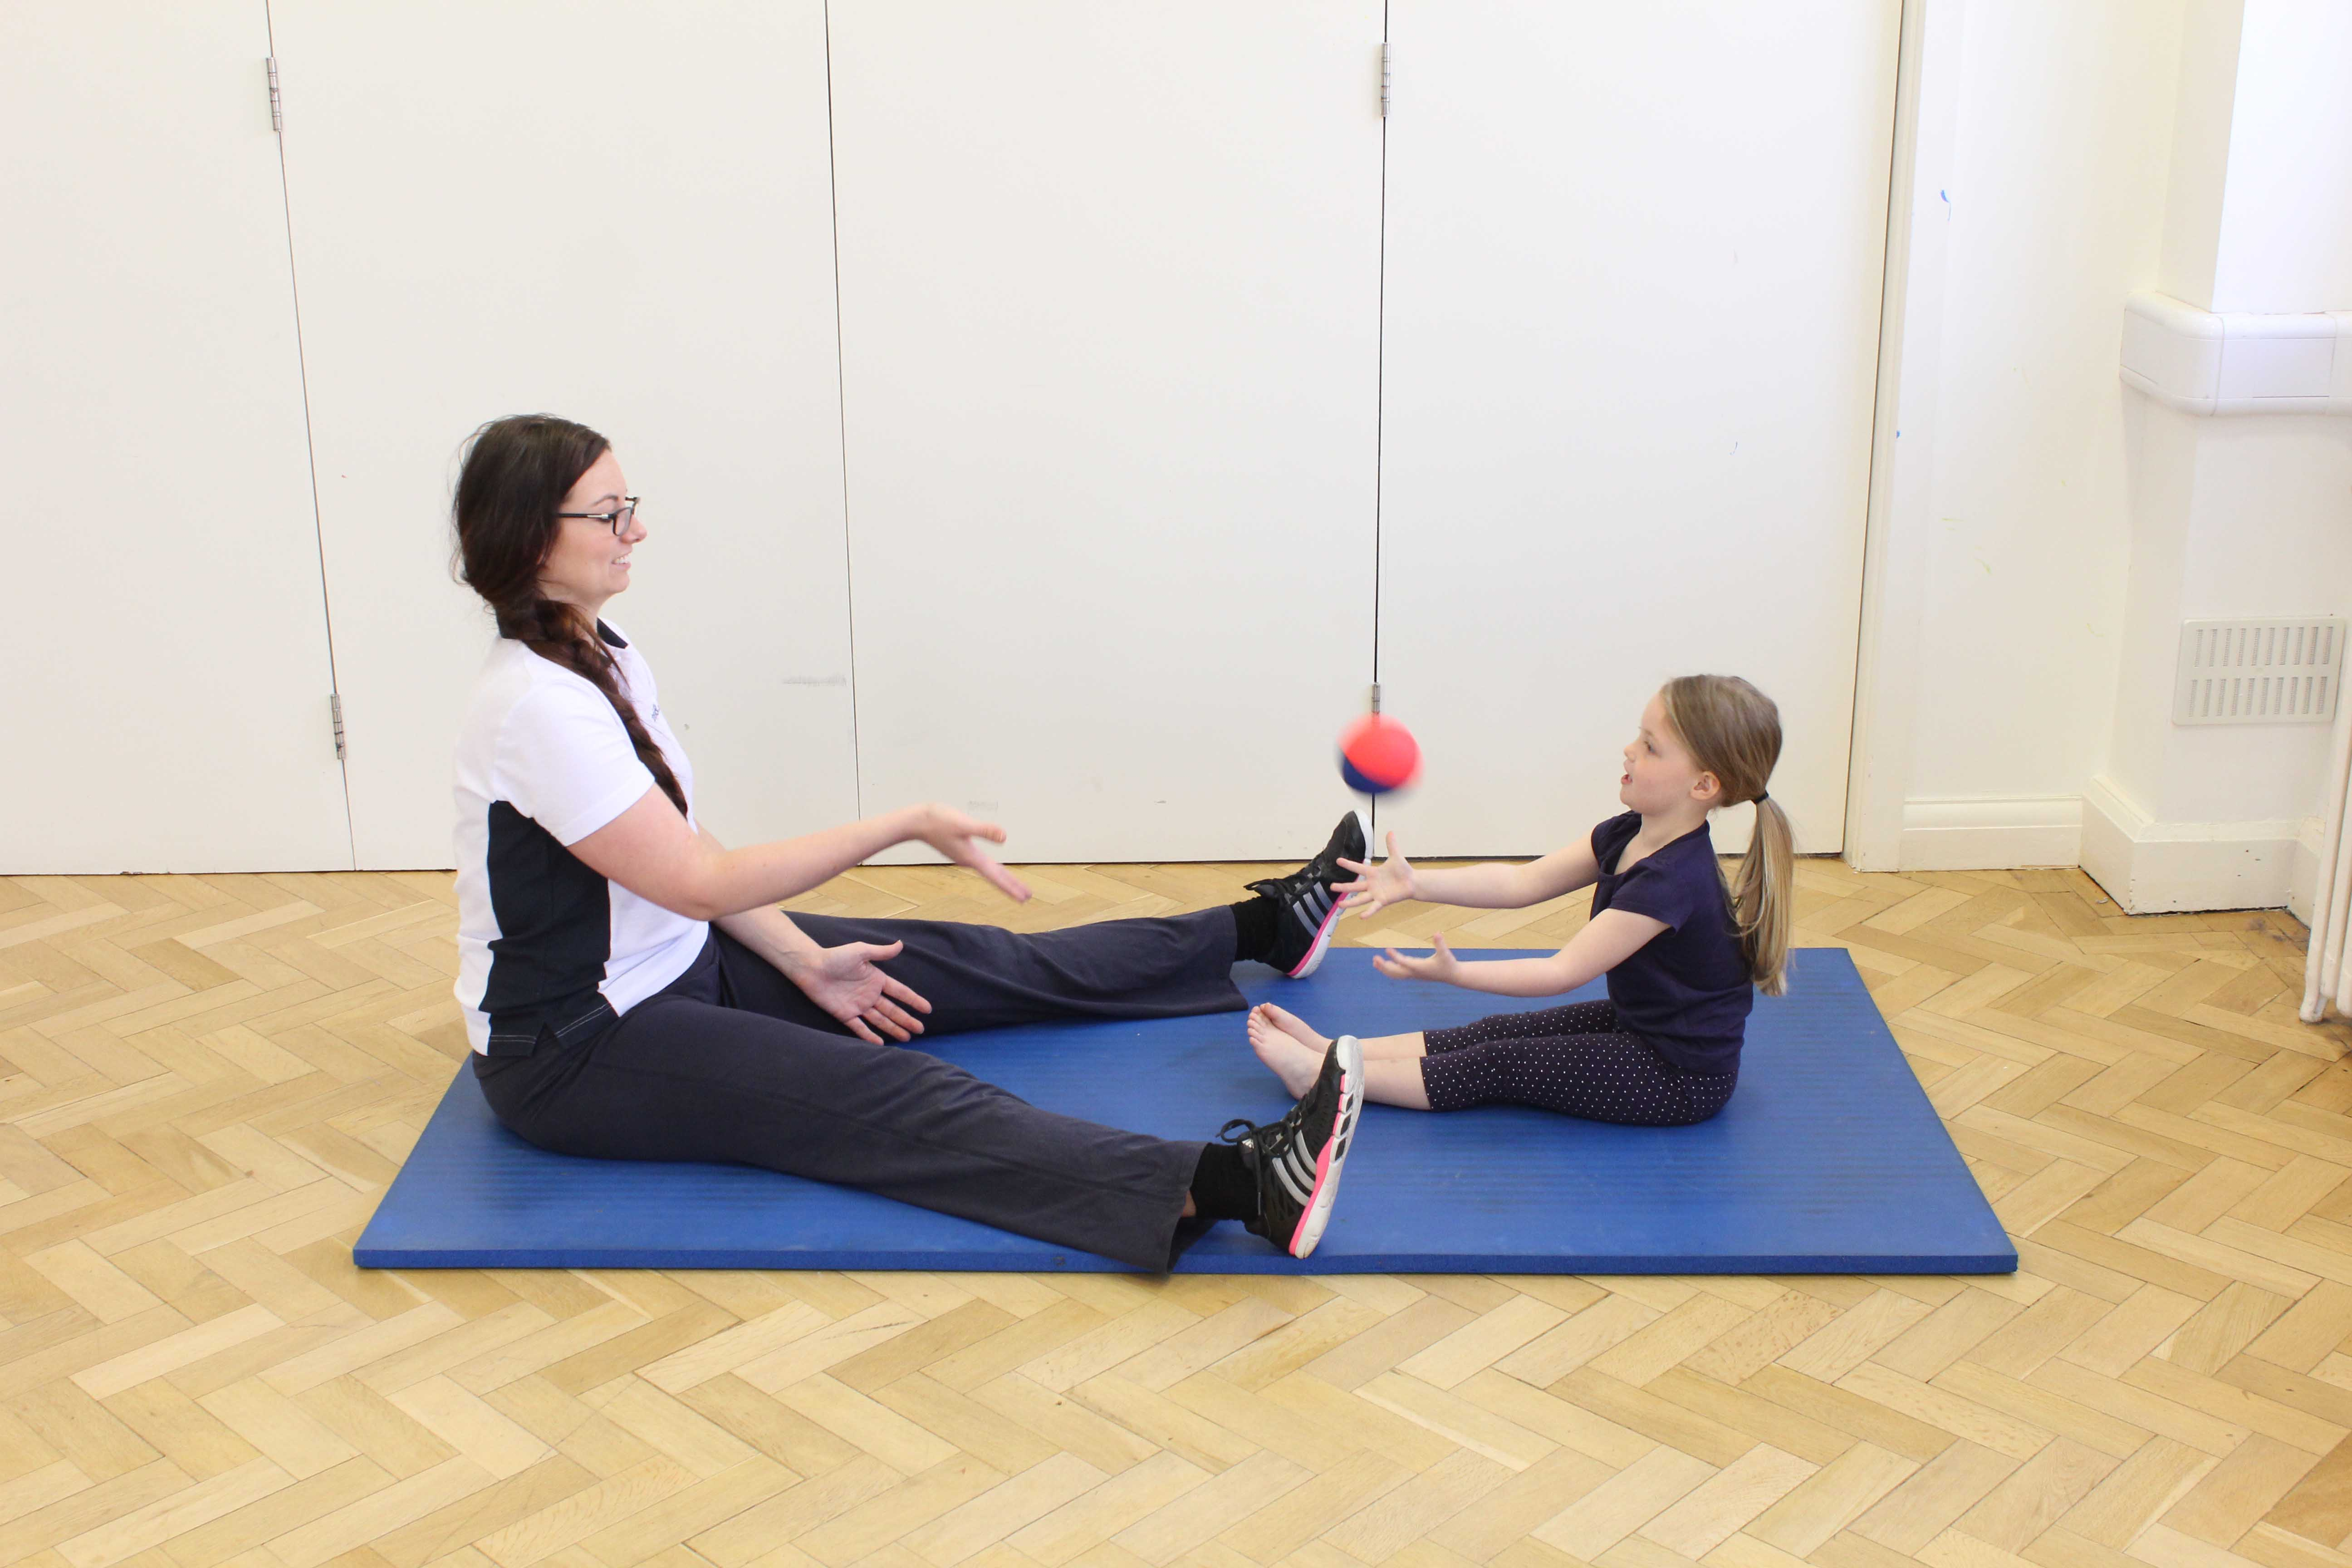 Gross motor skill exercises supervised by a specilaist neurological physiotherapist